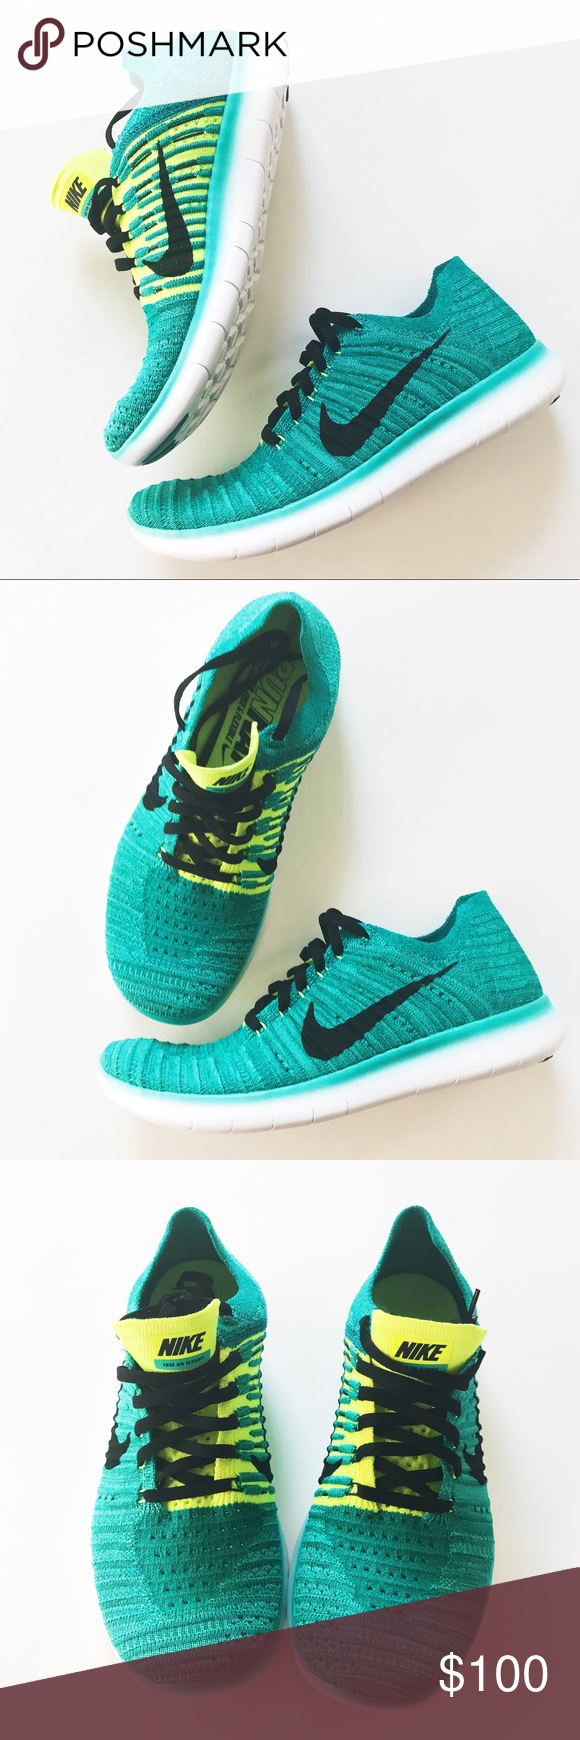 Nike free flyknit running shoes Brand new with box. These are light weight,  super